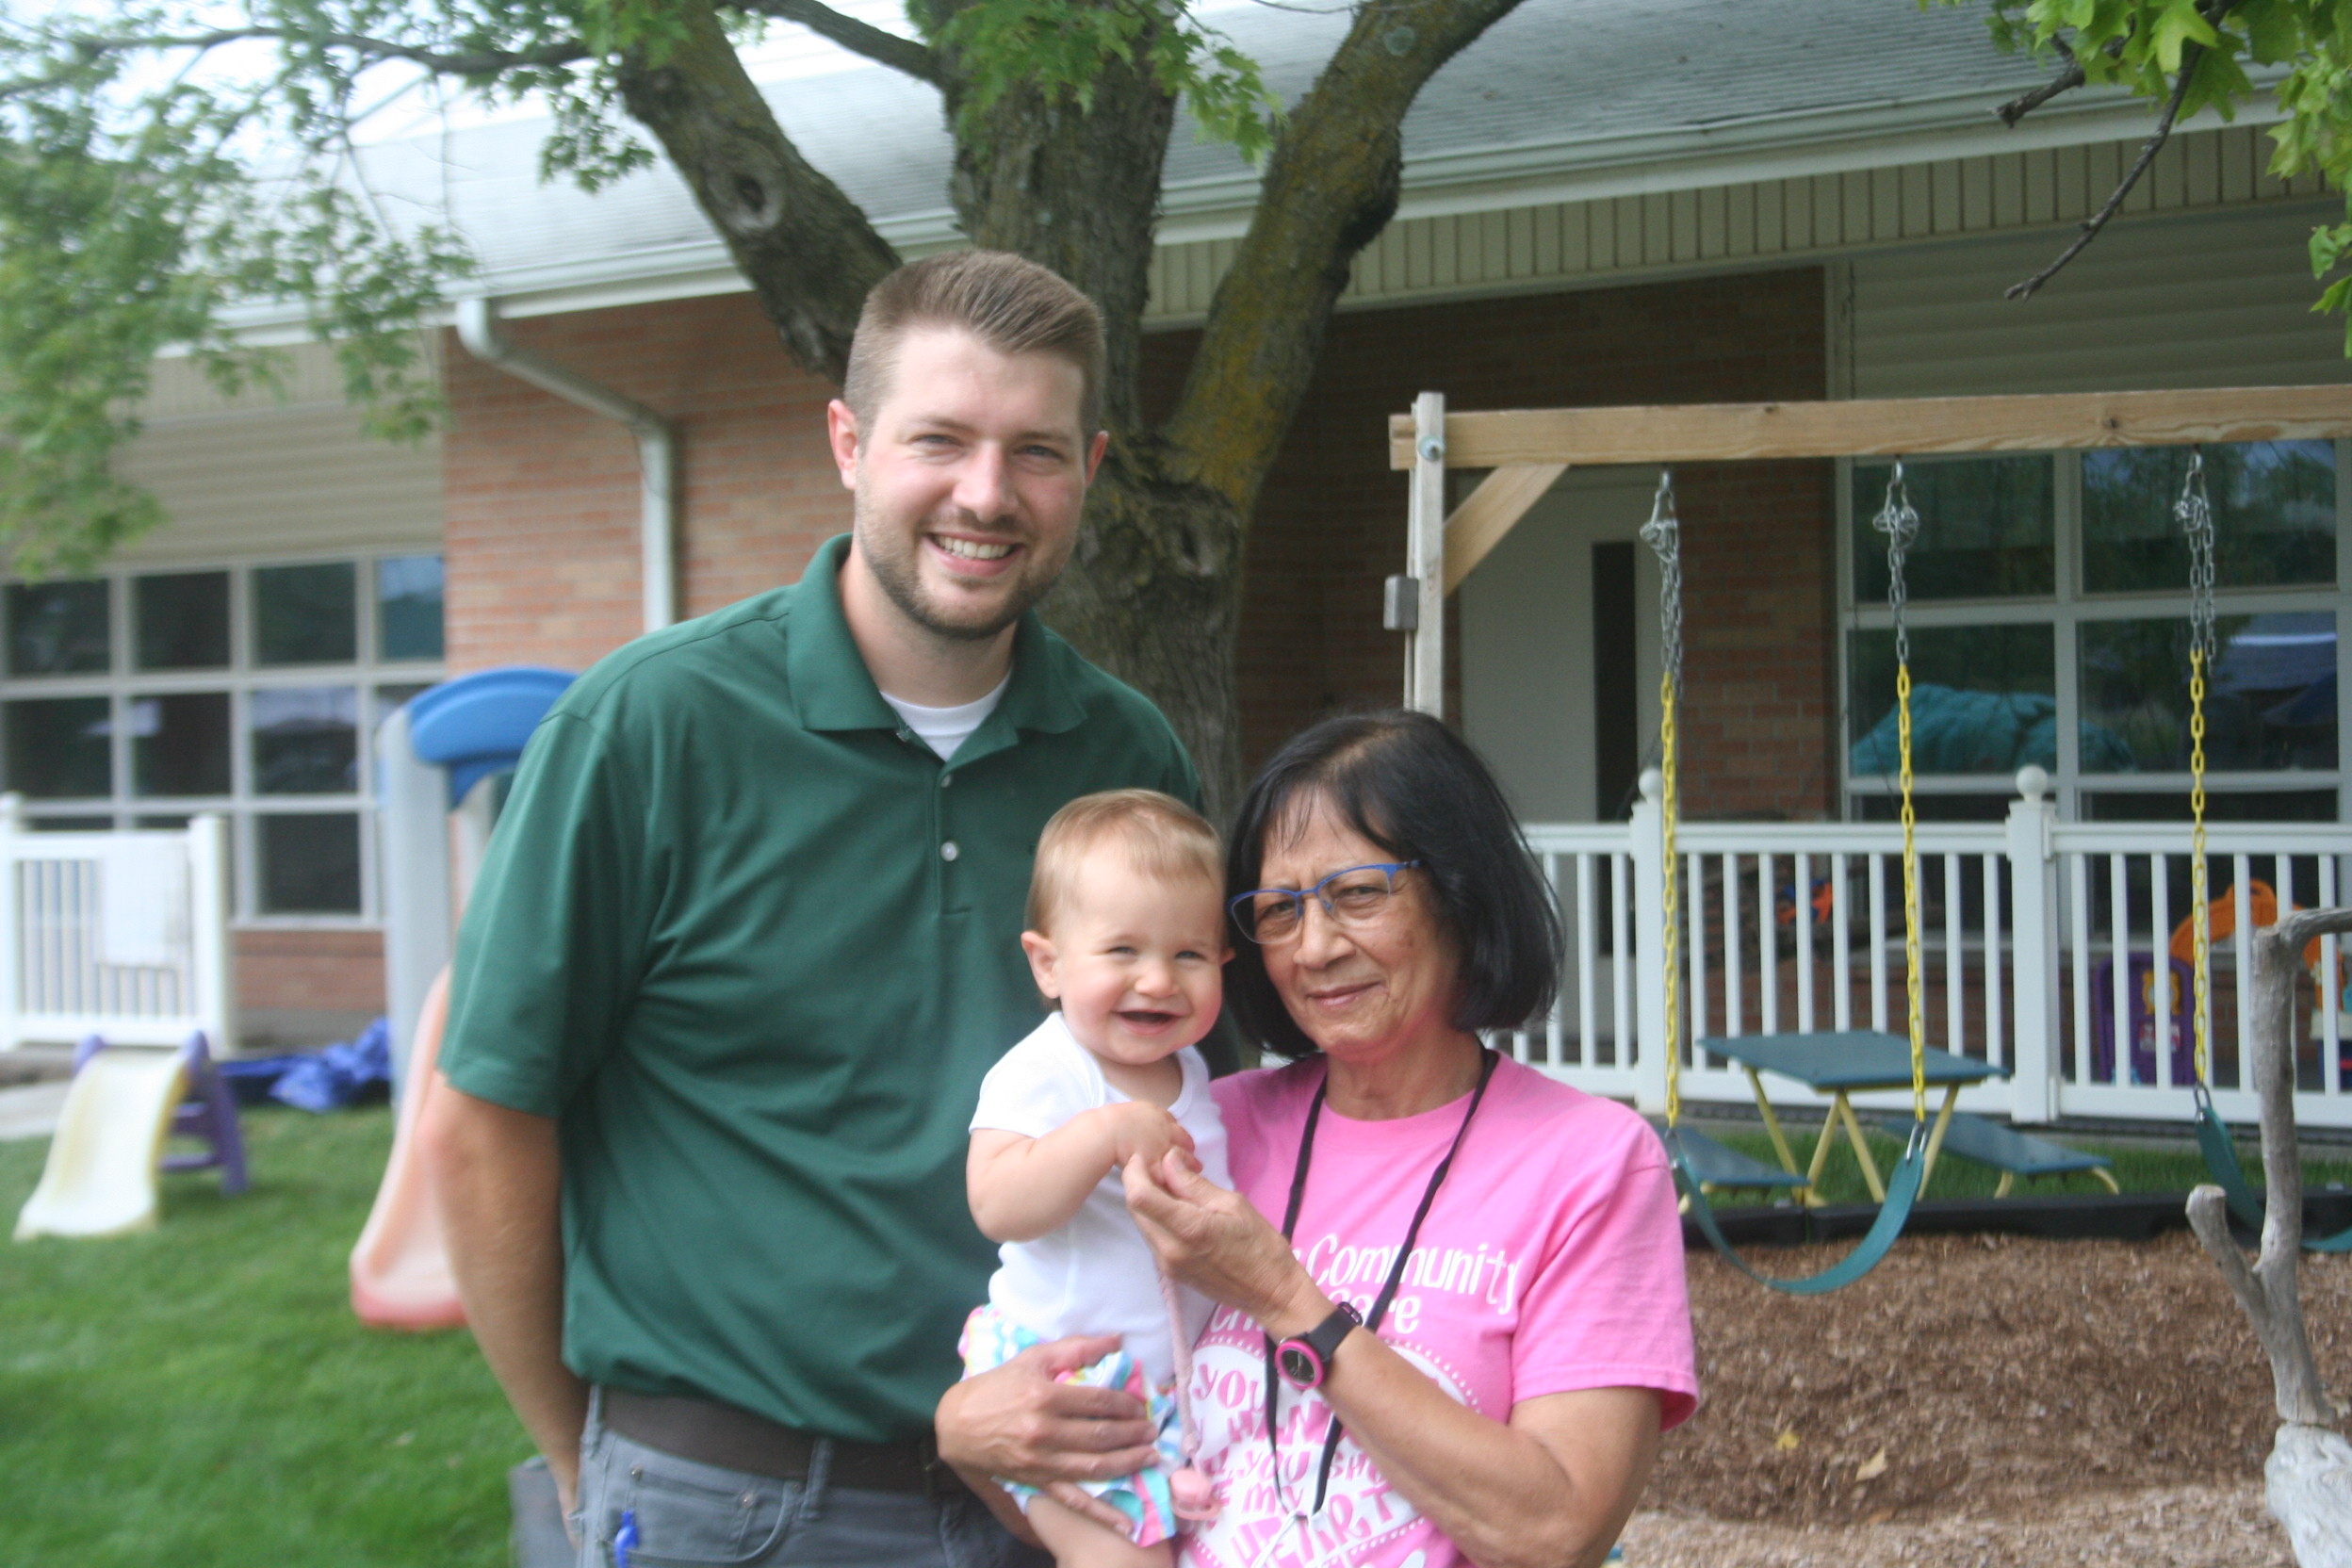 Child Development Center wants to pay tribute to retirees